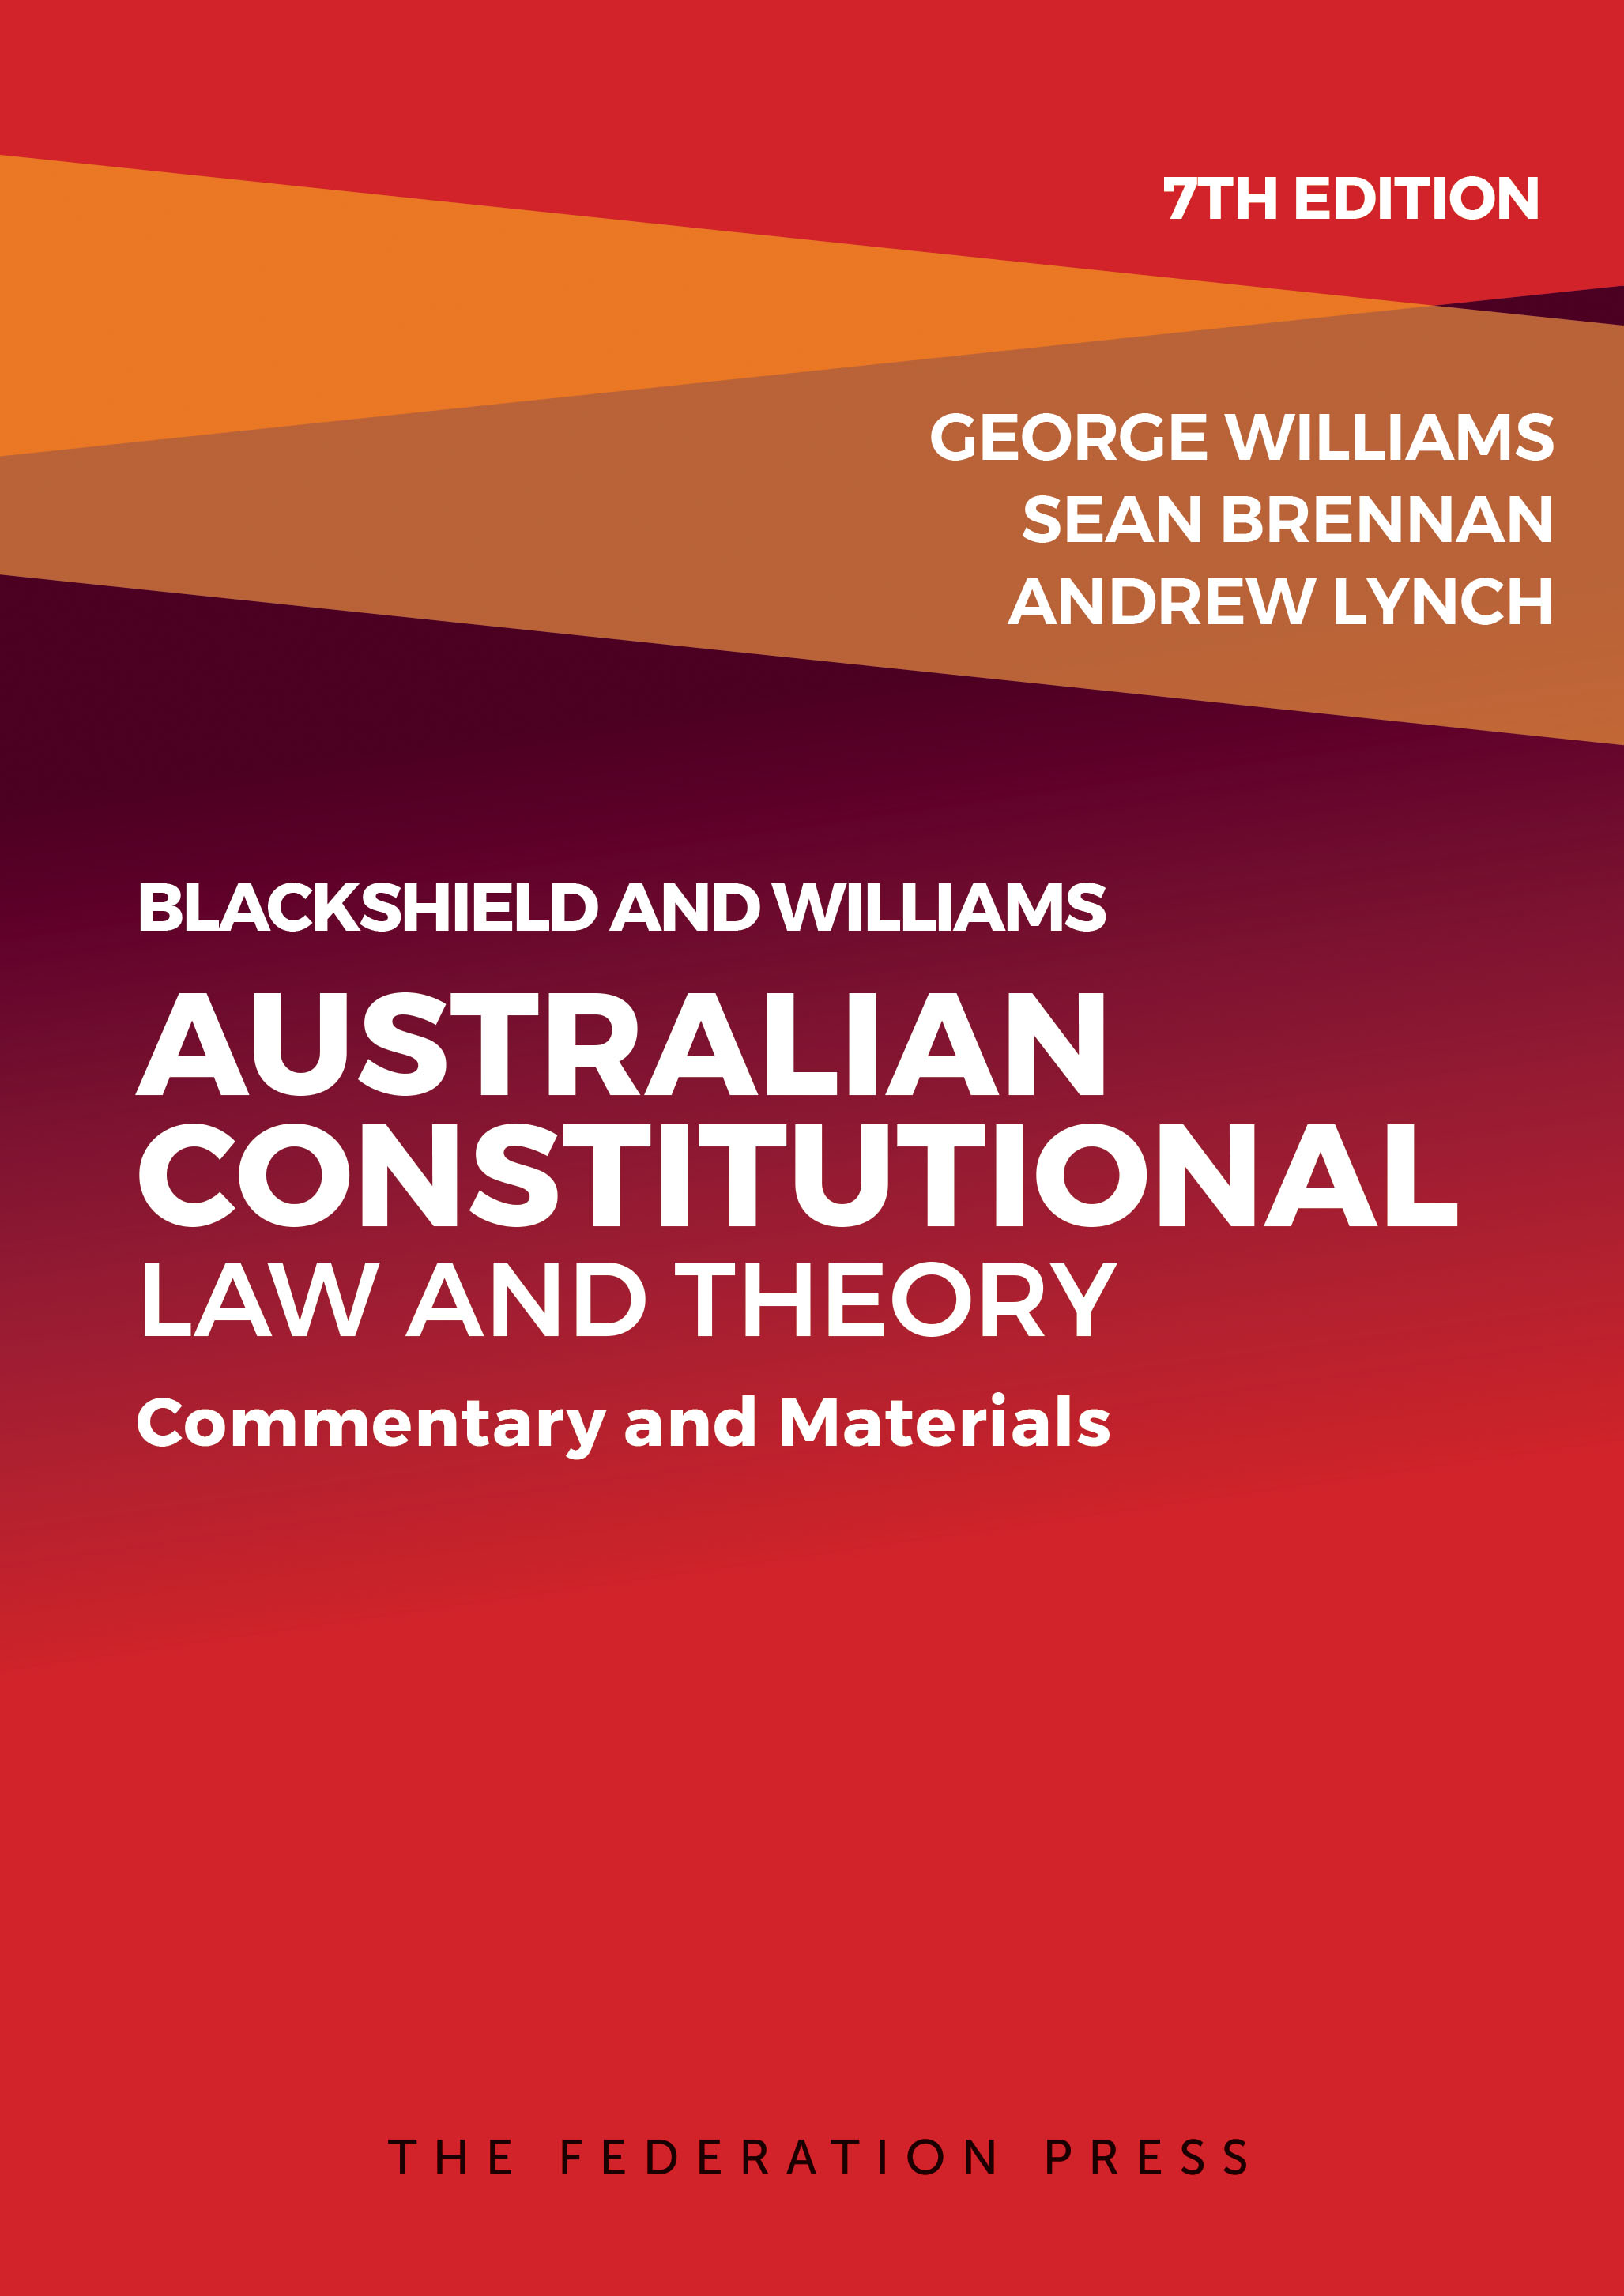 Blackshield and Williams Australian Constitutional Law and Theory (7th Edition)